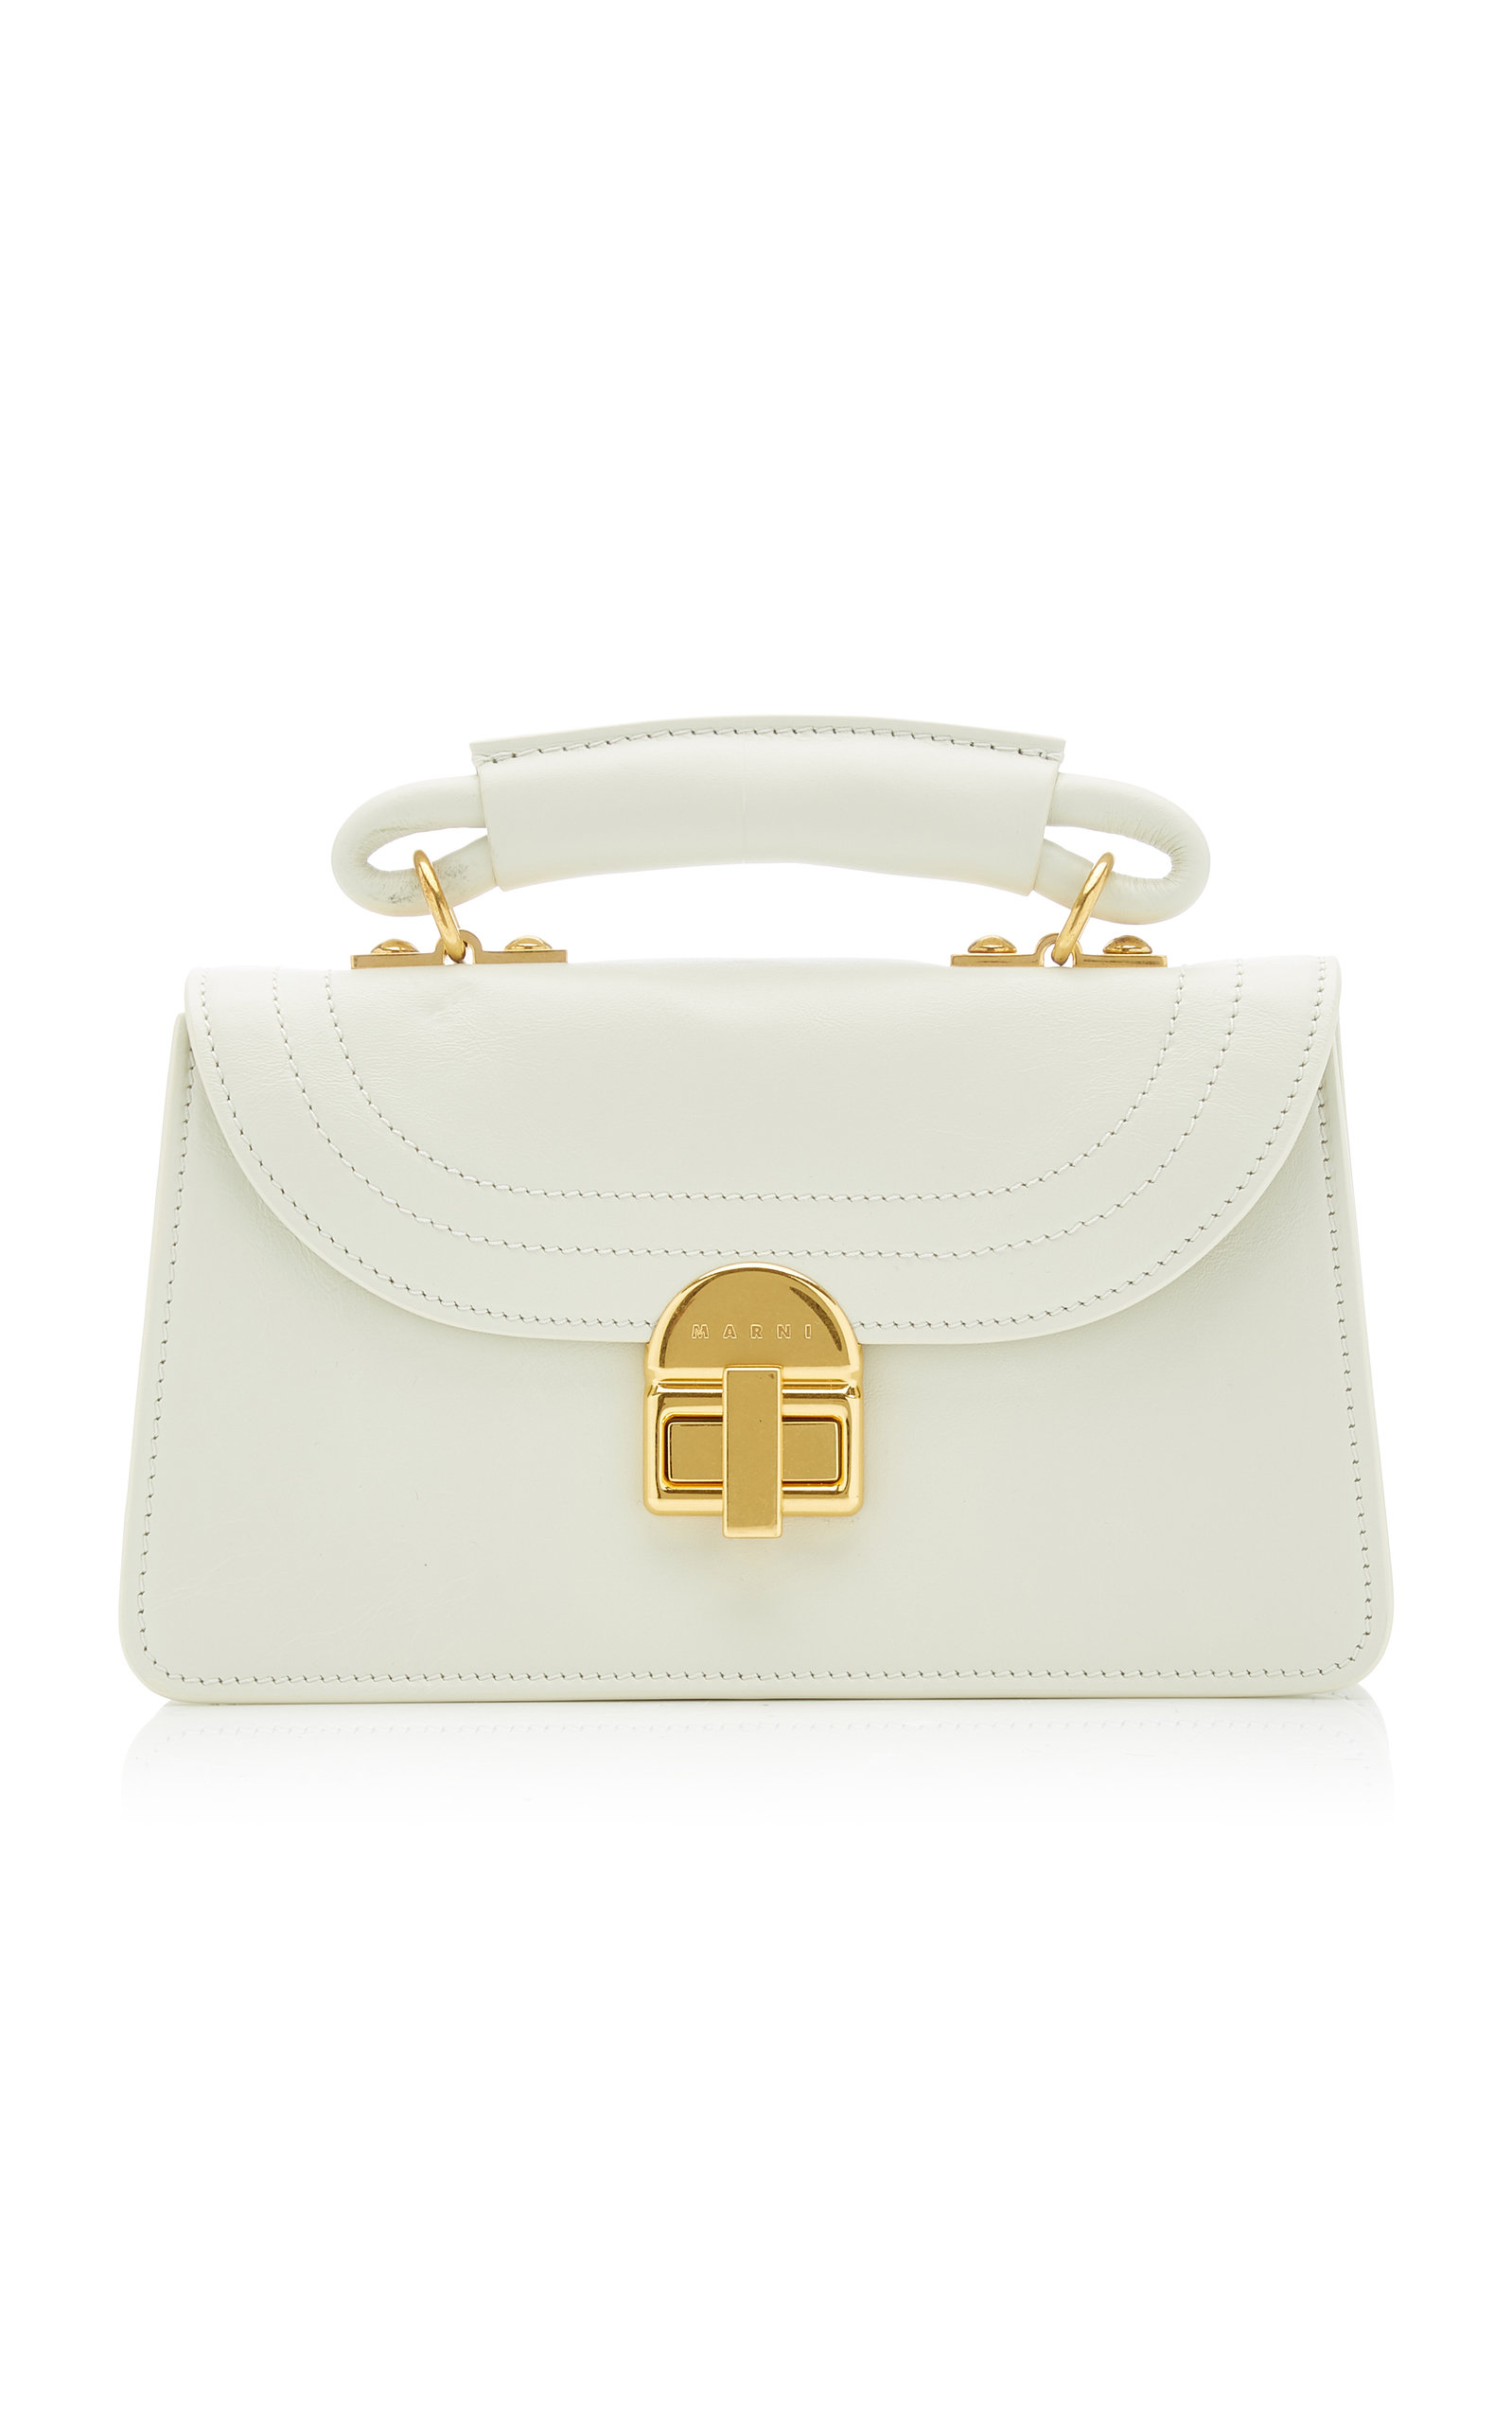 Marni JULIETTE SMALL LEATHER TOP HANDLE BAG